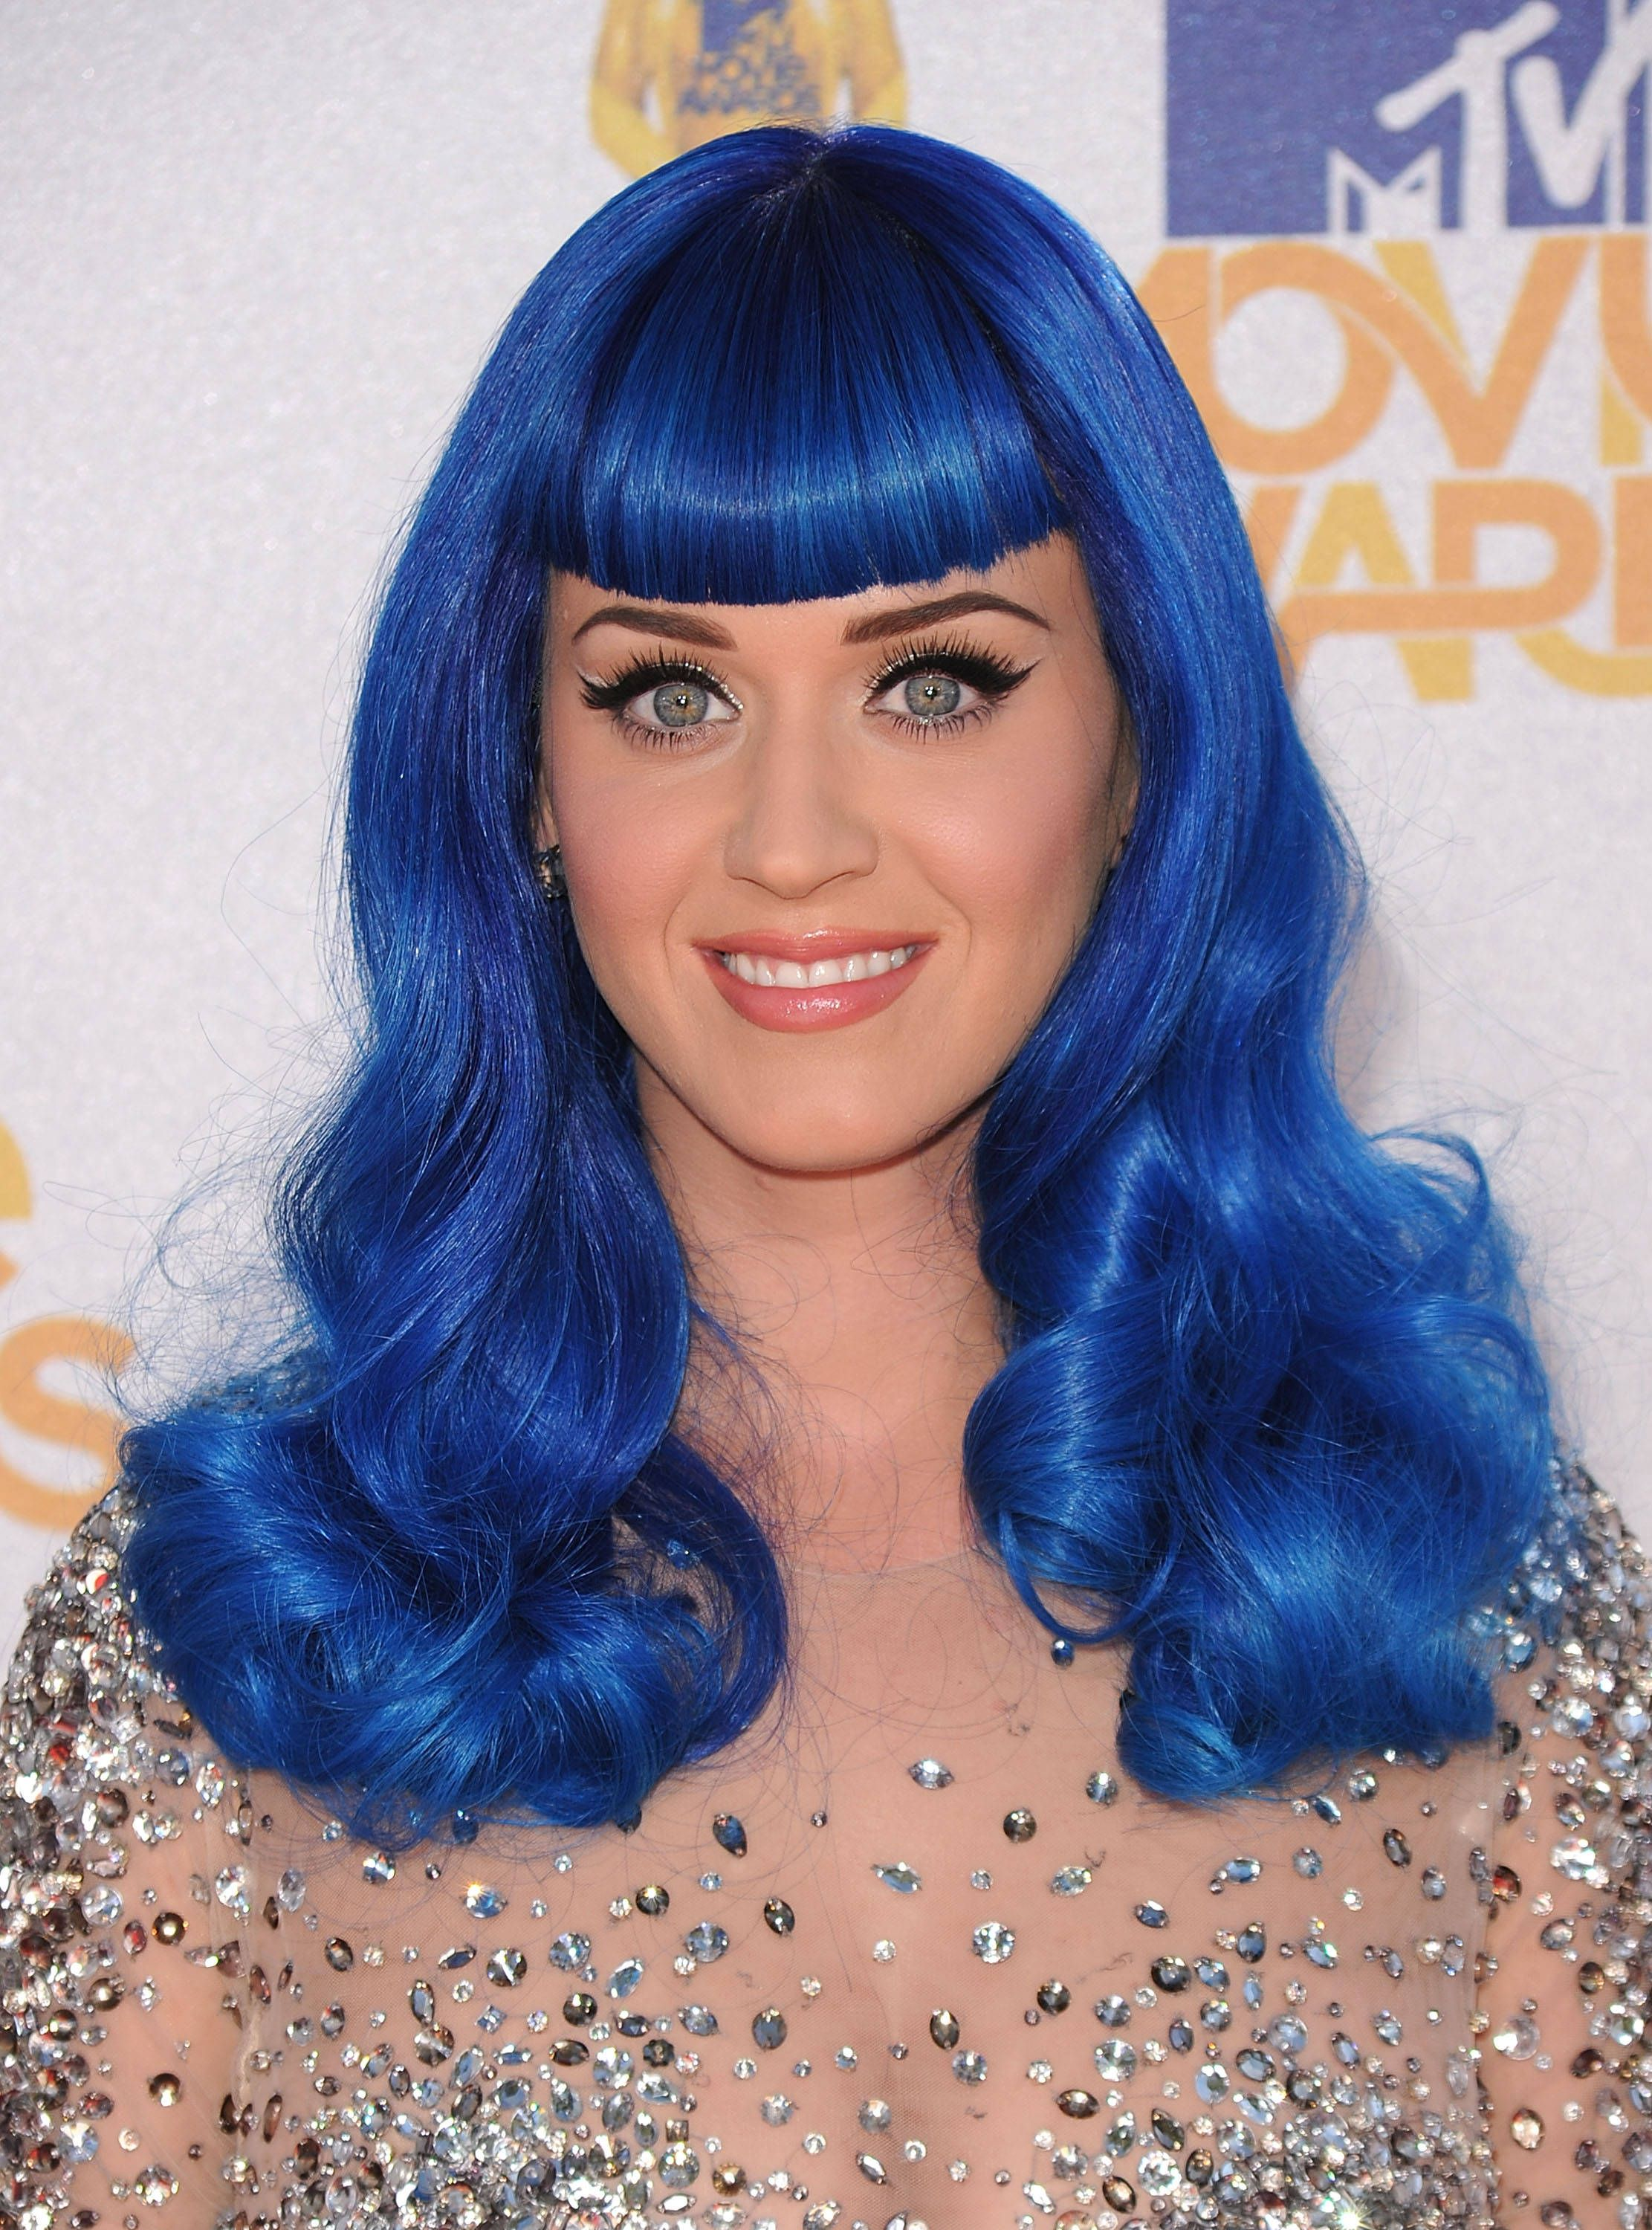 Super Bowl Prep The Evolution Of Katy Perry S Many Hairstyles In